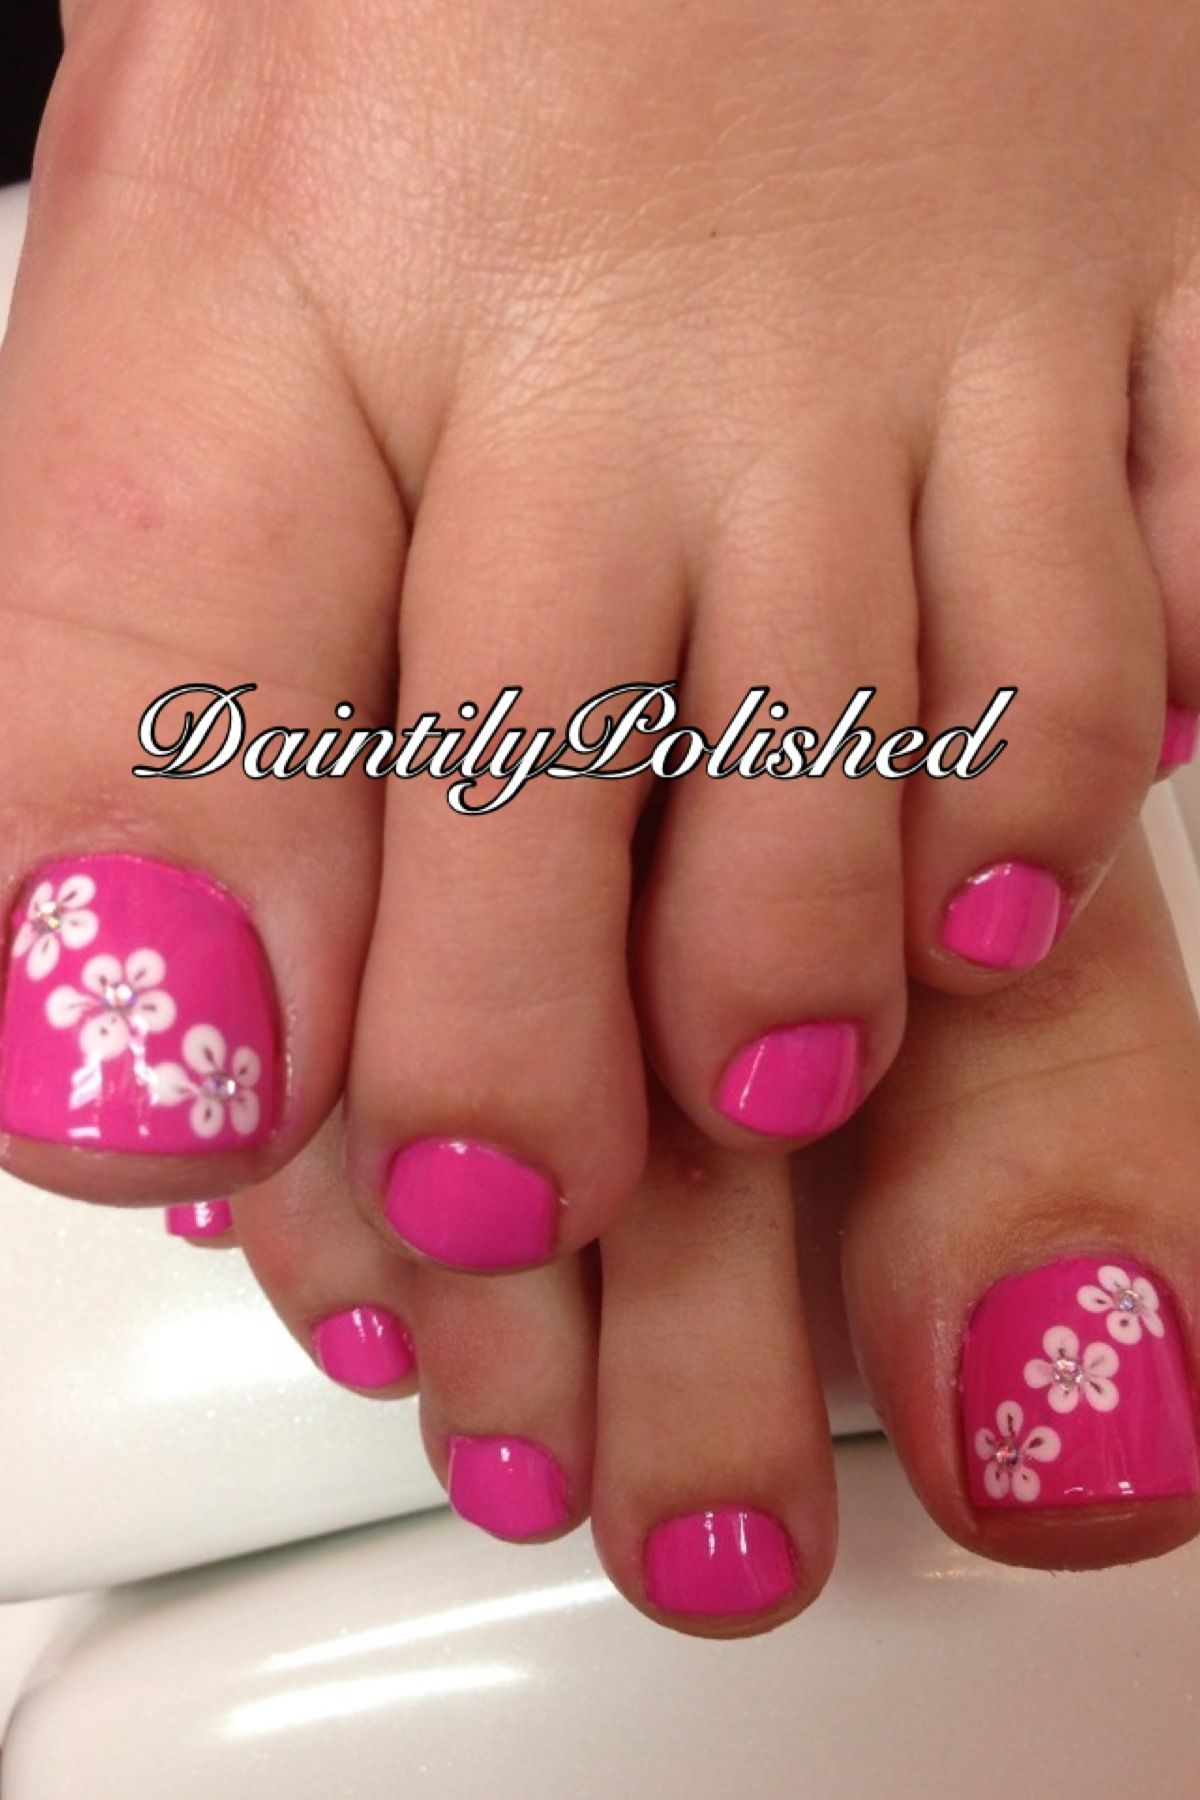 Pink Hawaiian Flowers. Pink Hawaiian Flowers Pedicure ... - Pink Hawaiian Flowers Daintily Polished Nail Designs, Nails, Toe